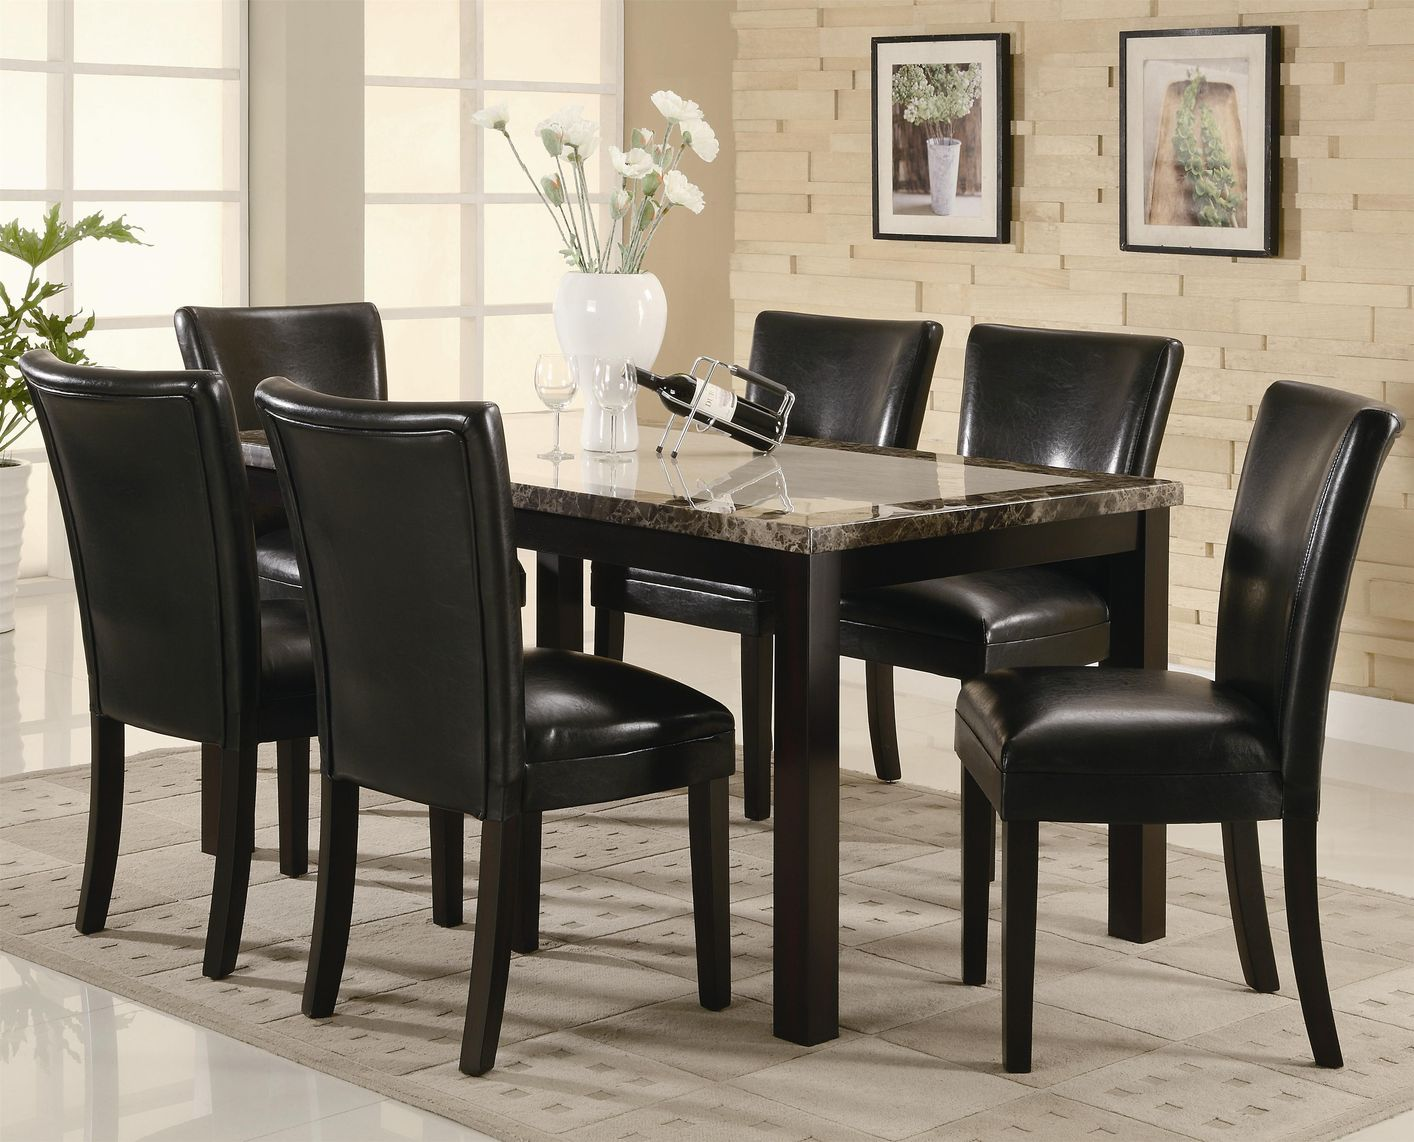 Dining room chairs and table